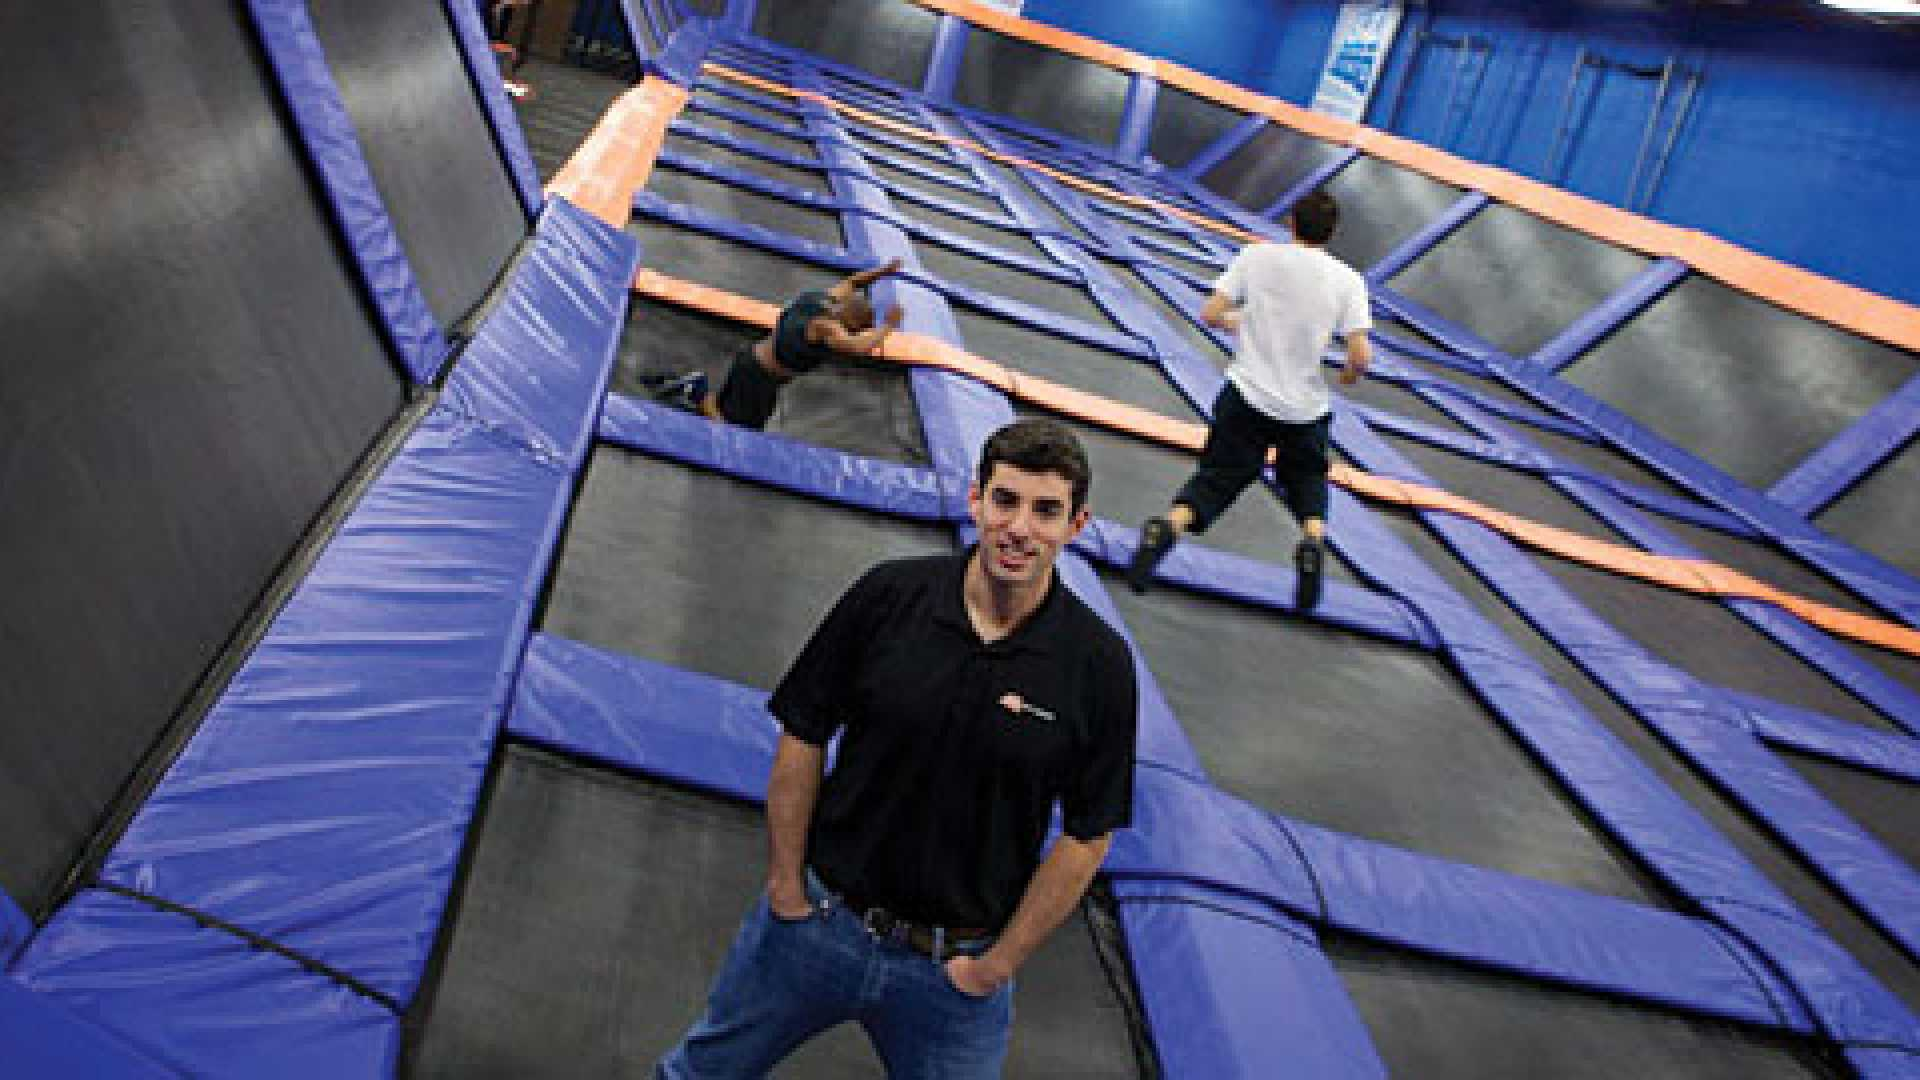 Sky Zone's co-CEO Jeff Platt started a franchise of trampoline courts with his father.